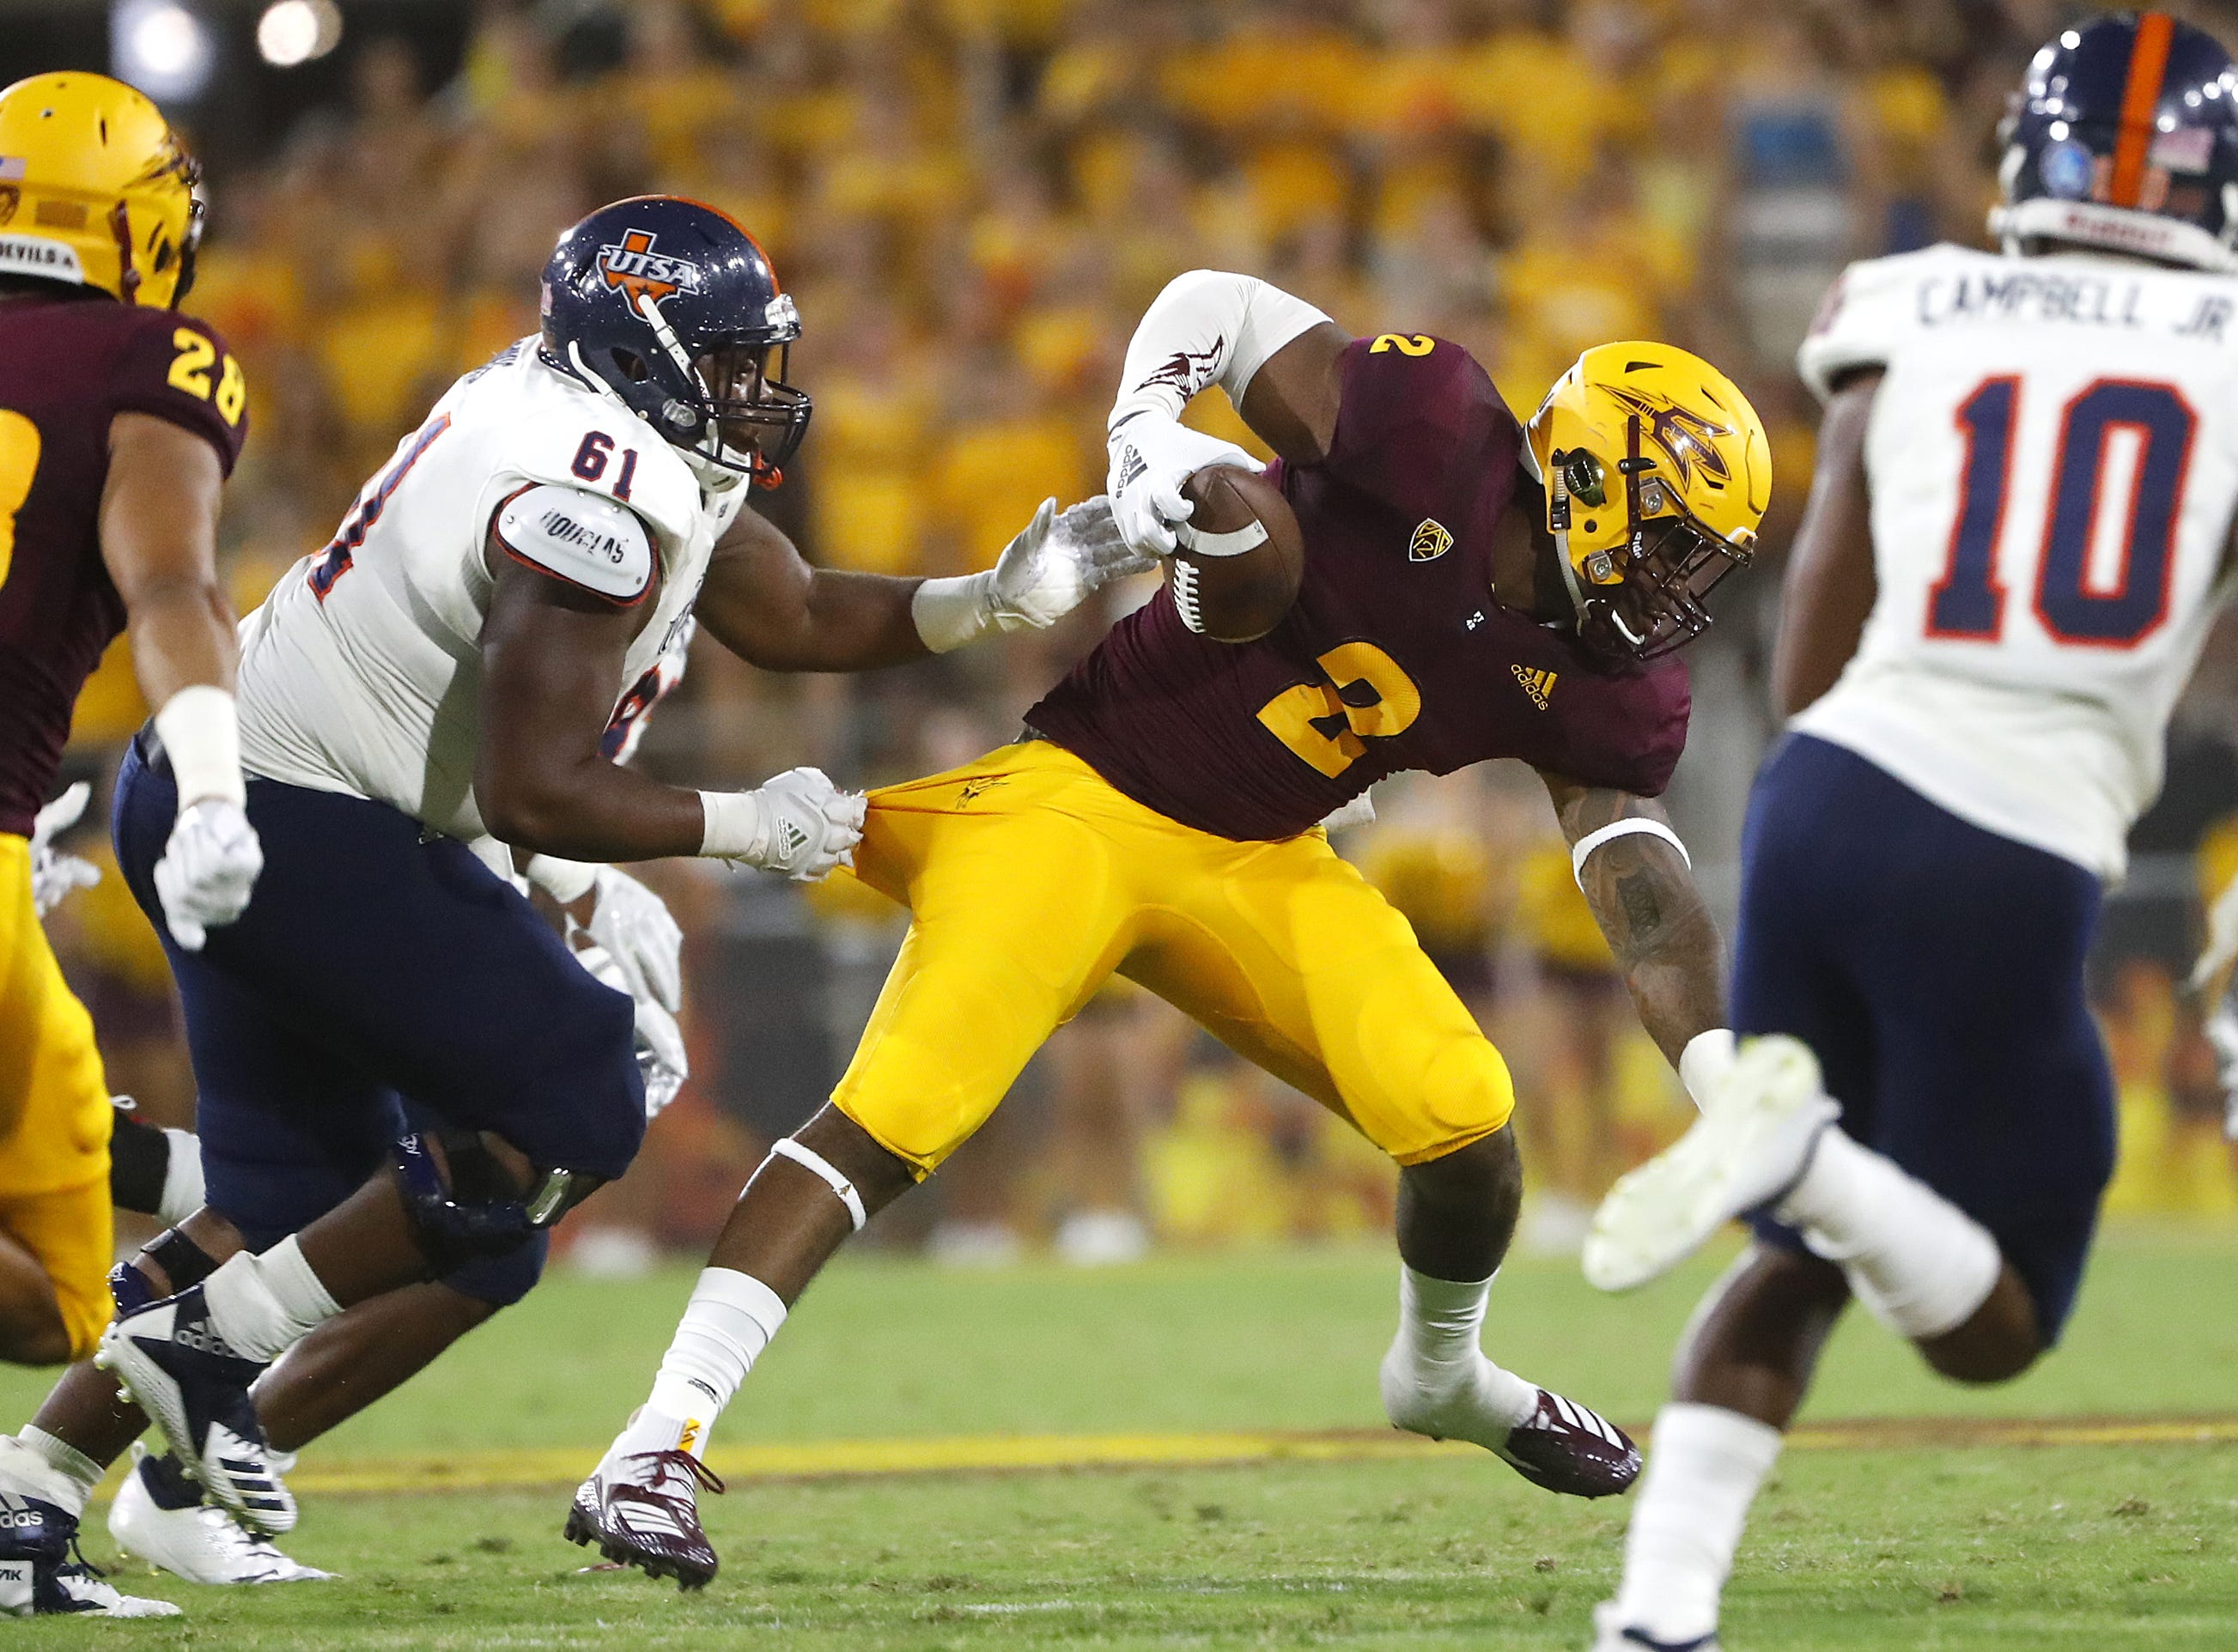 UTSA Roadrunners offensive lineman Kevin Davis (61) tackles Arizona State Sun Devils defensive lineman Darius Slade (2) after Slade picked up a fumble during the first half at Sun Devil Stadium in Tempe, Ariz. on Sept. 1, 2018.